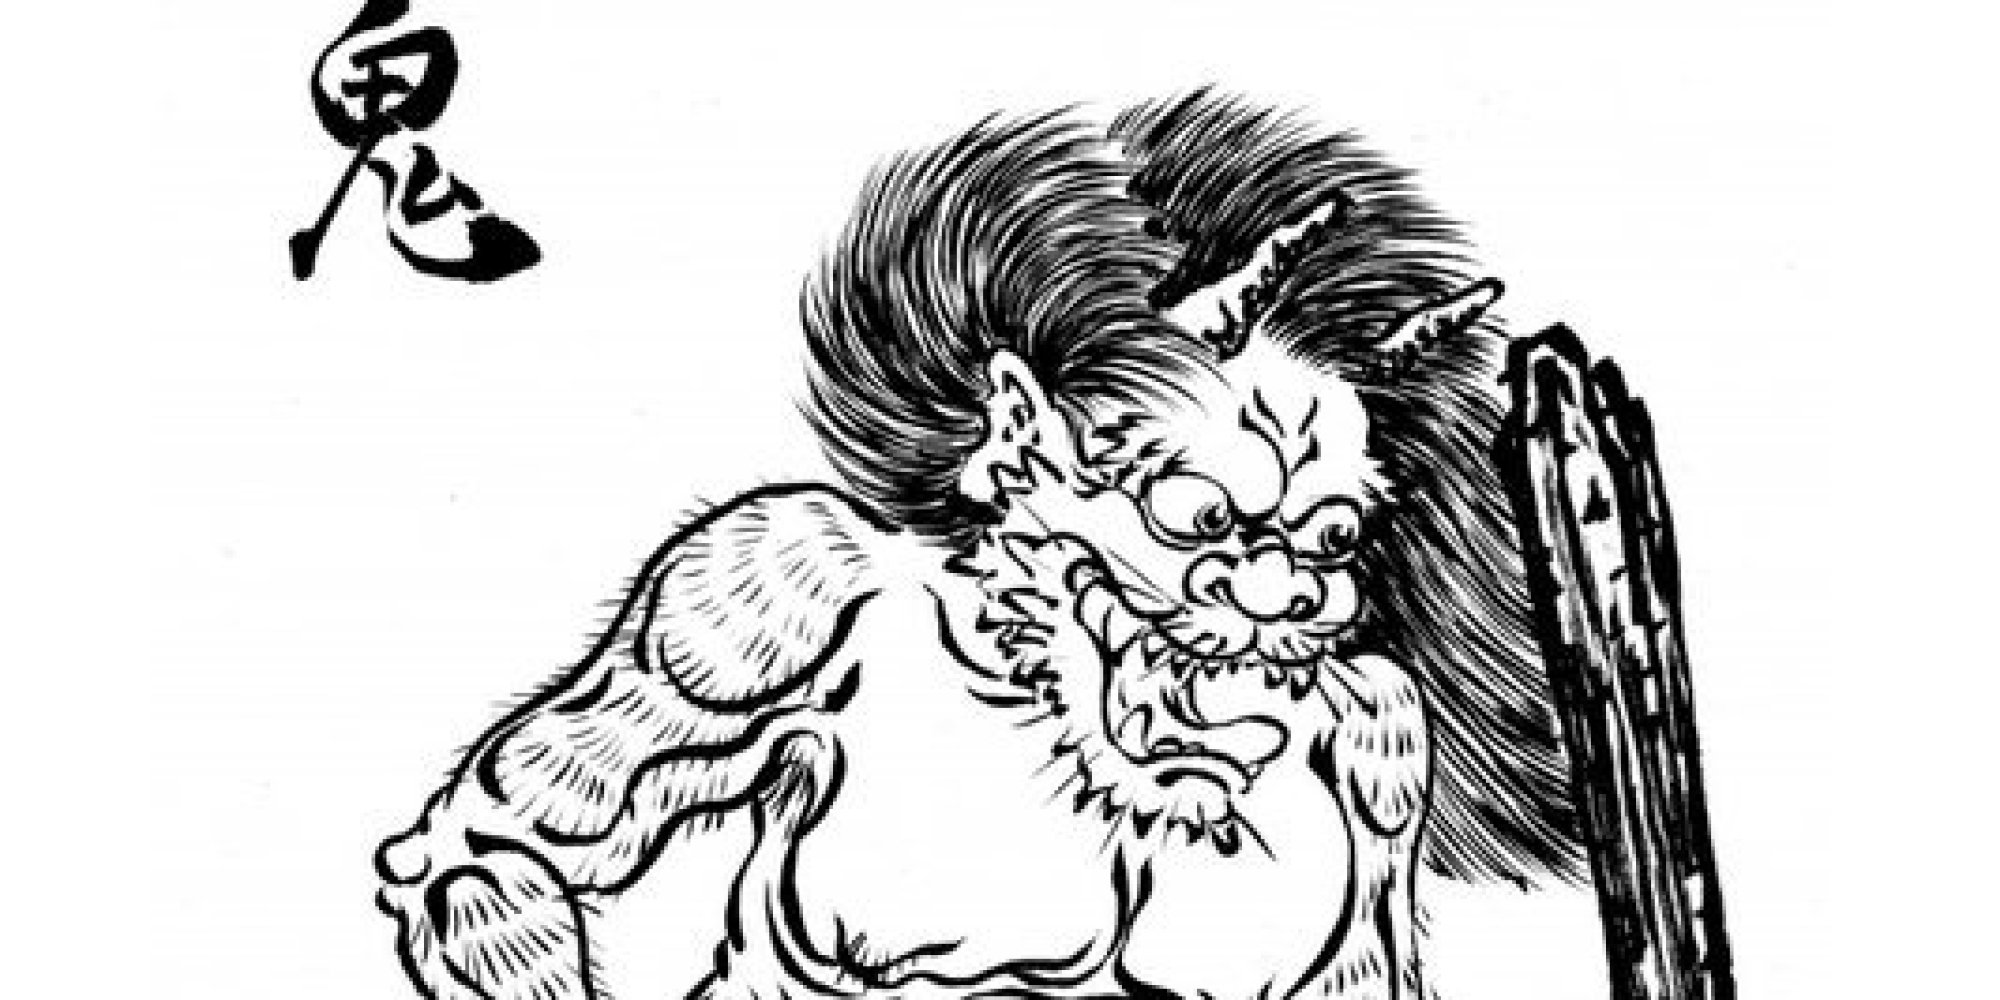 How to say colouring book in japanese - The Brilliant Japanese Folklore That Inspires Anime New Book Huffpost